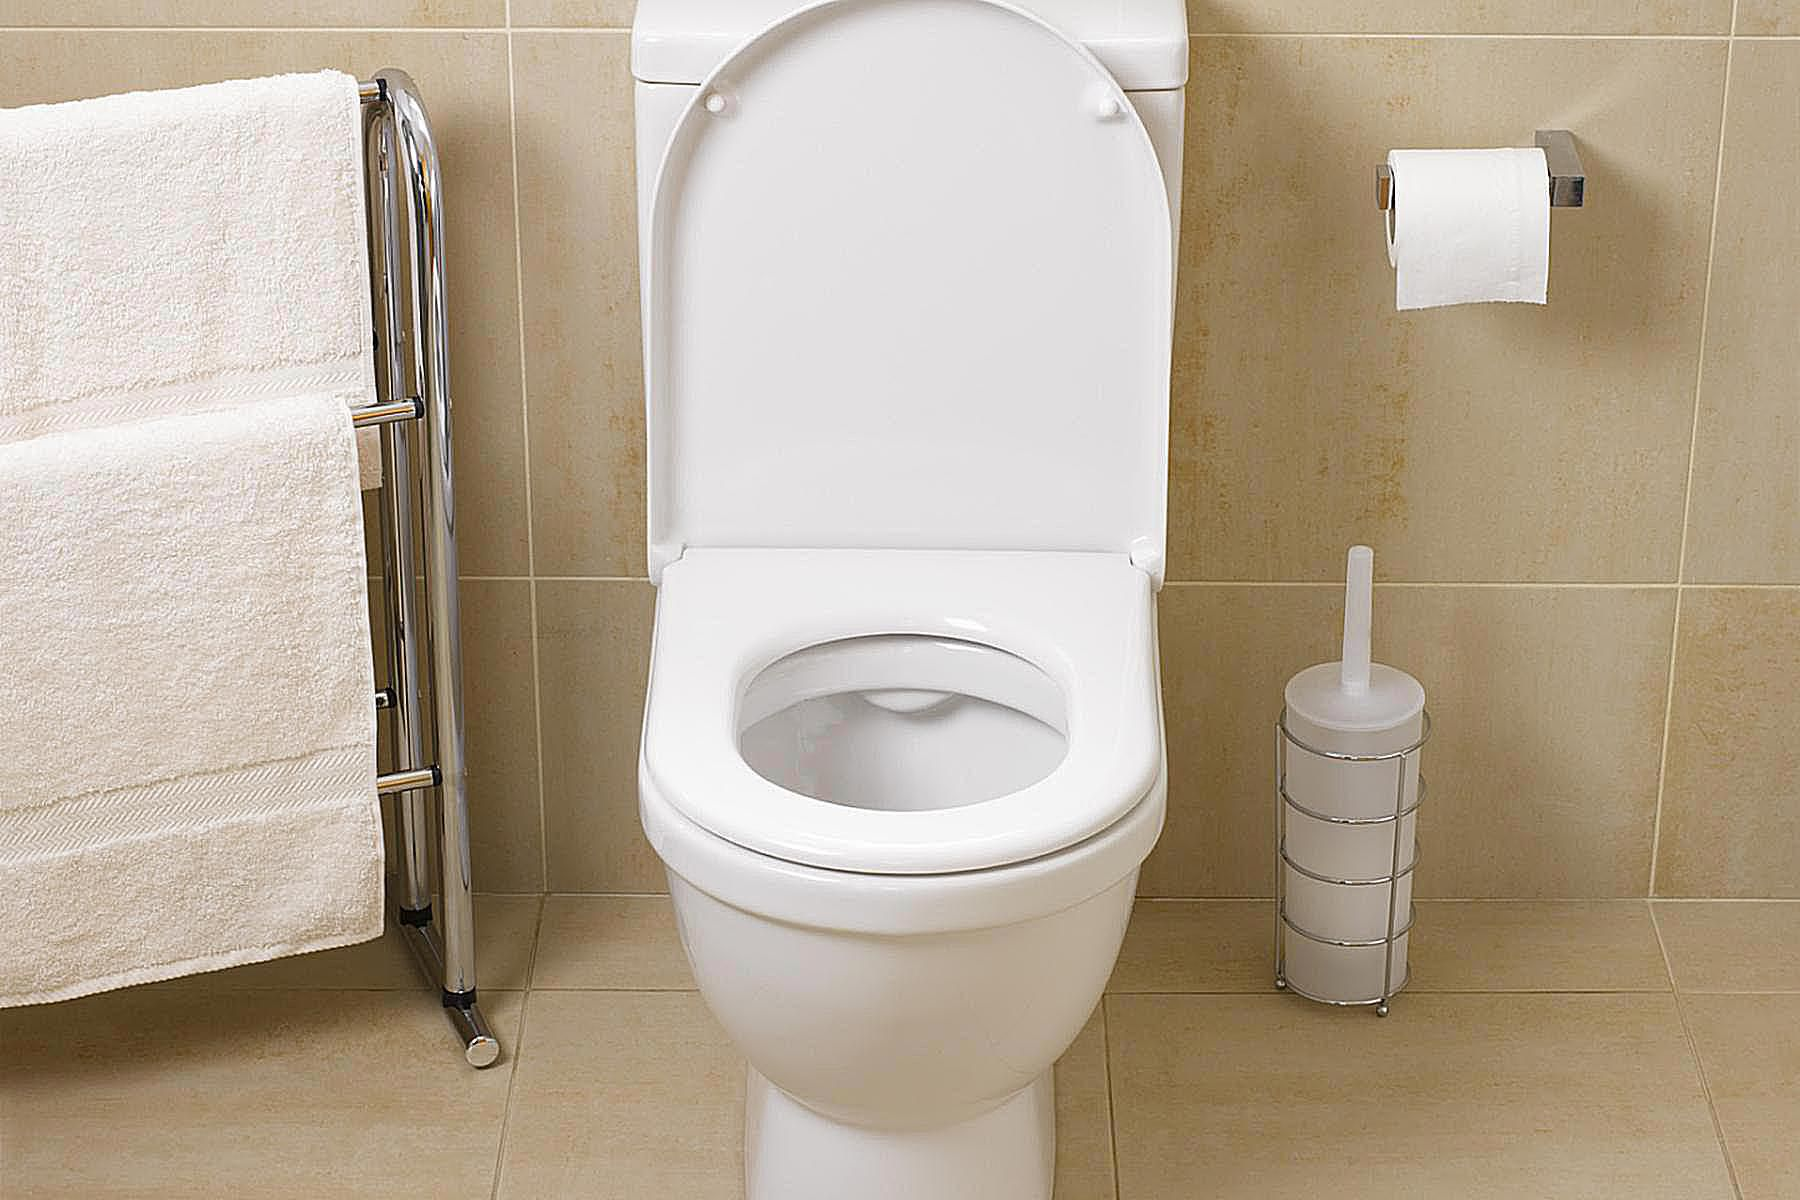 Three Items To Keep On The Floor Near Your Toilet